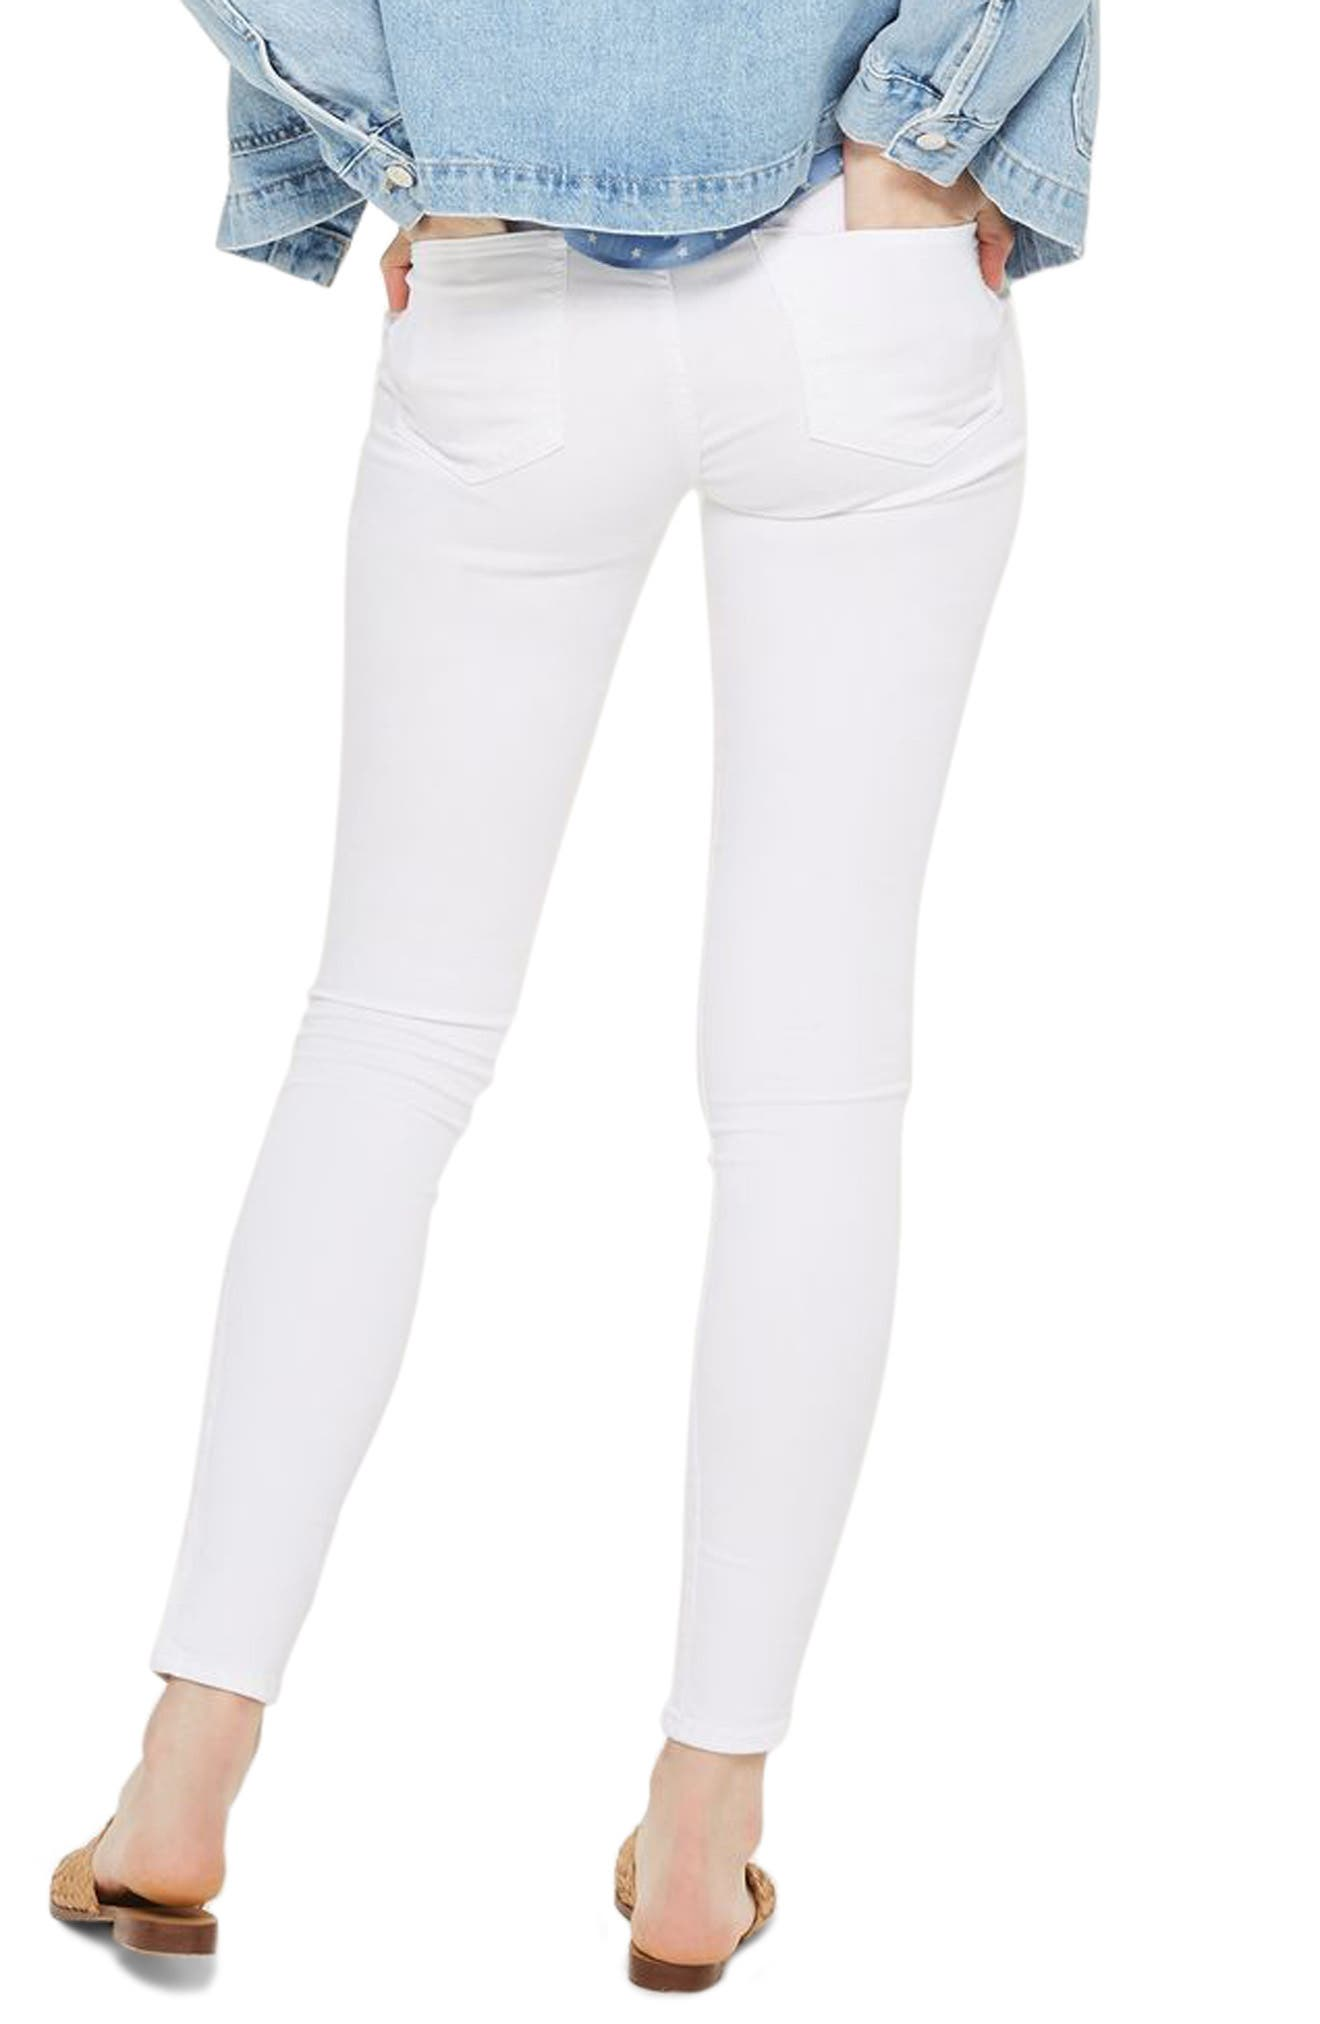 Leigh Skinny Jeans,                             Alternate thumbnail 2, color,                             100